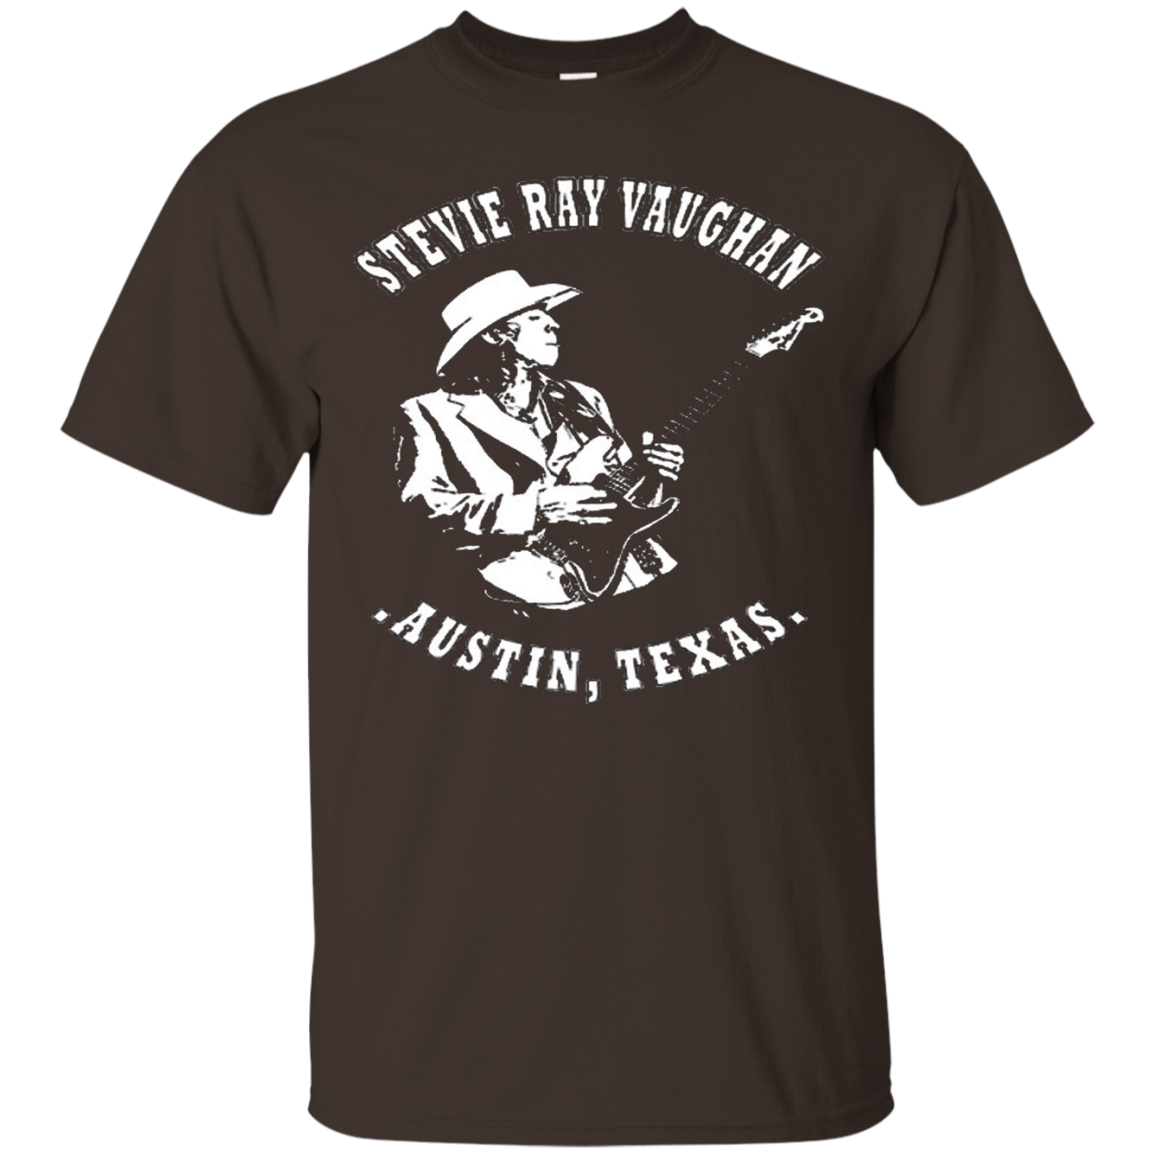 Stevie Ray Vaughan t-shirt